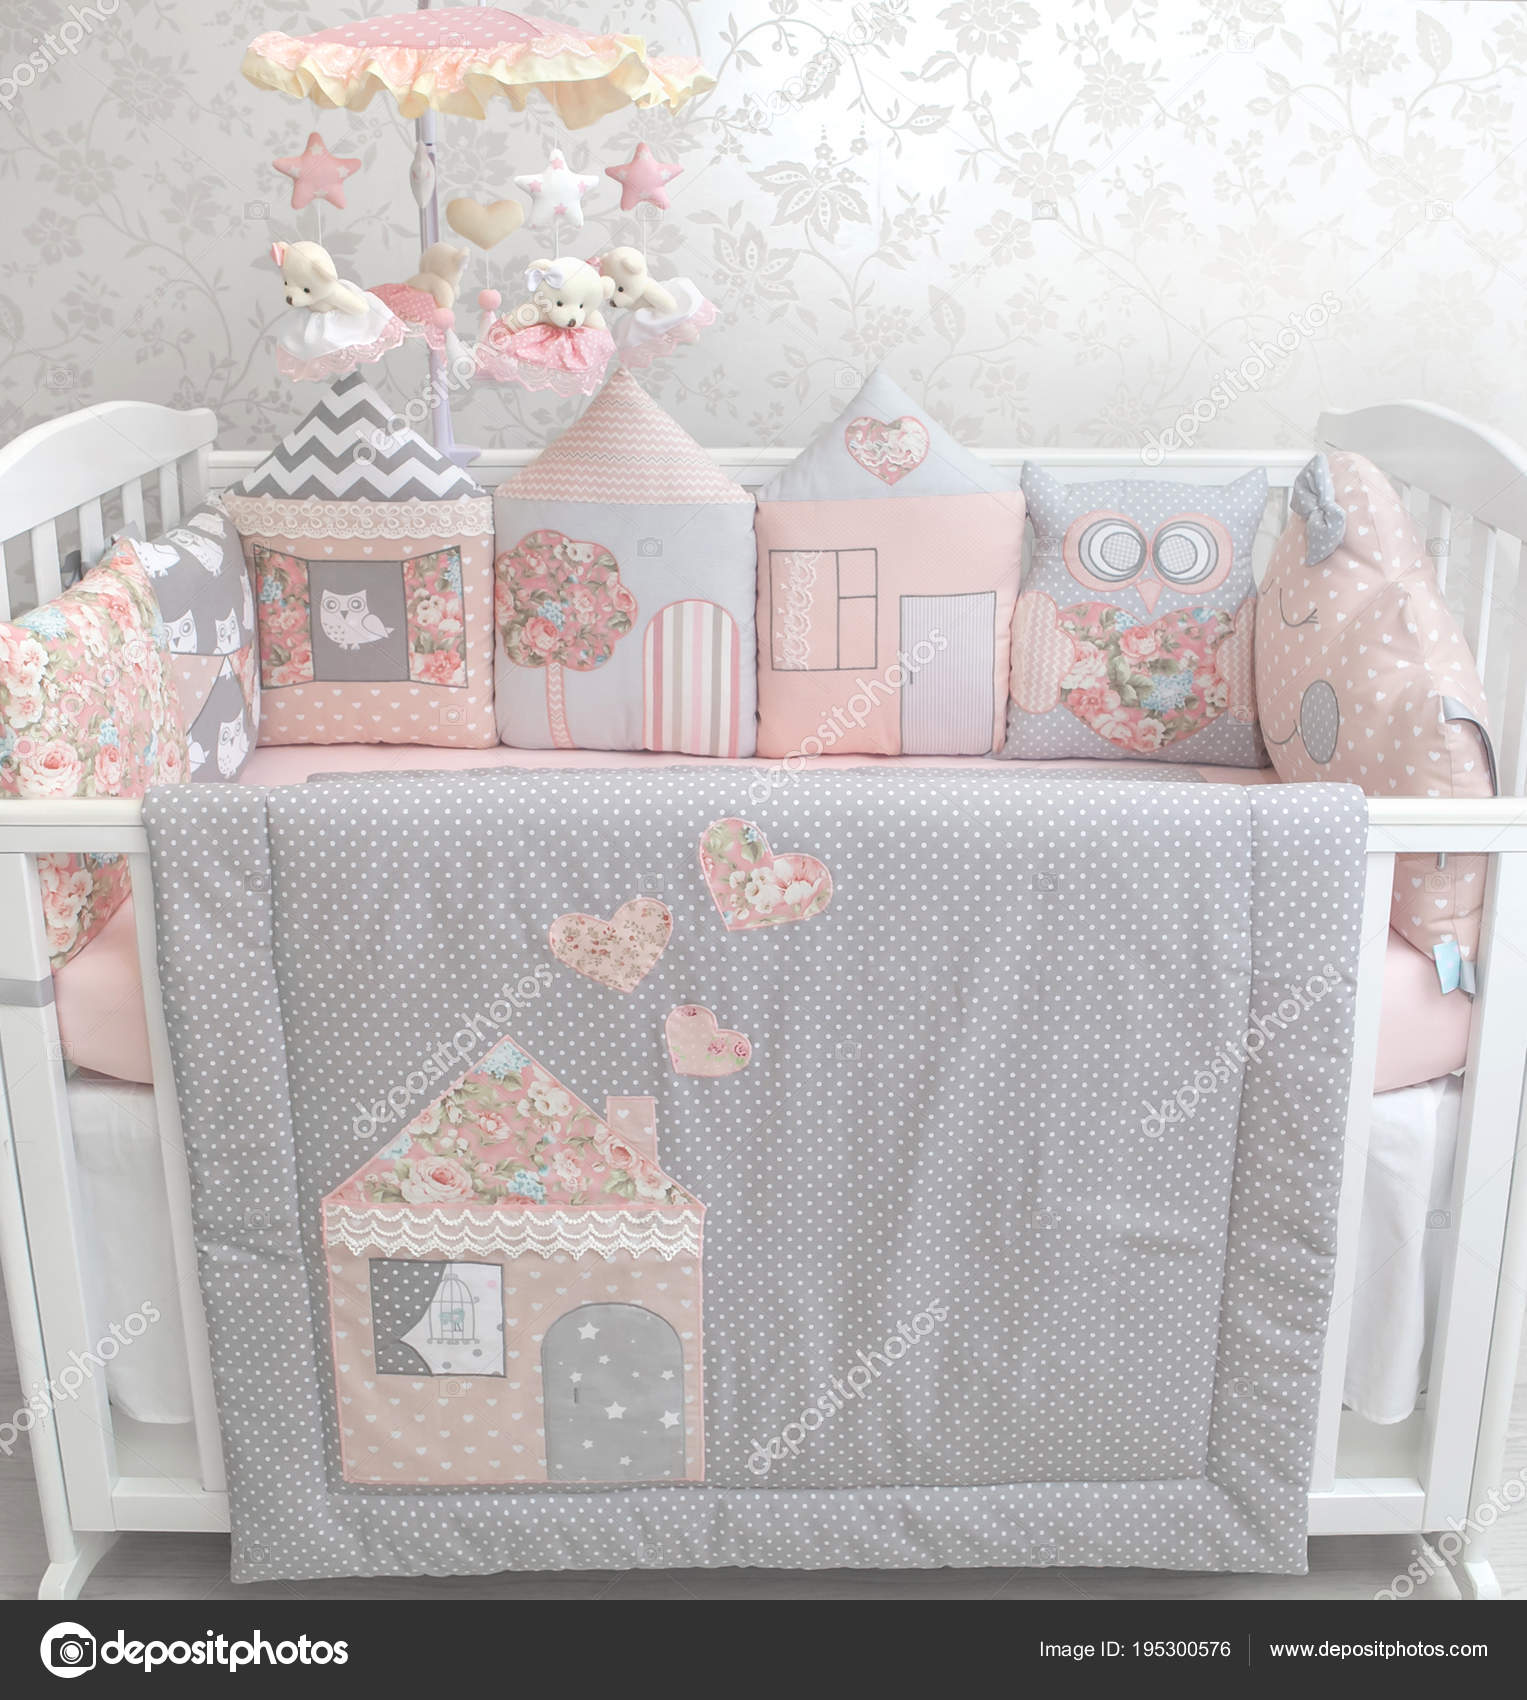 f1fdfc909 Cute Babygirl Bedding Set — Stock Photo © SashaBasina #195300576